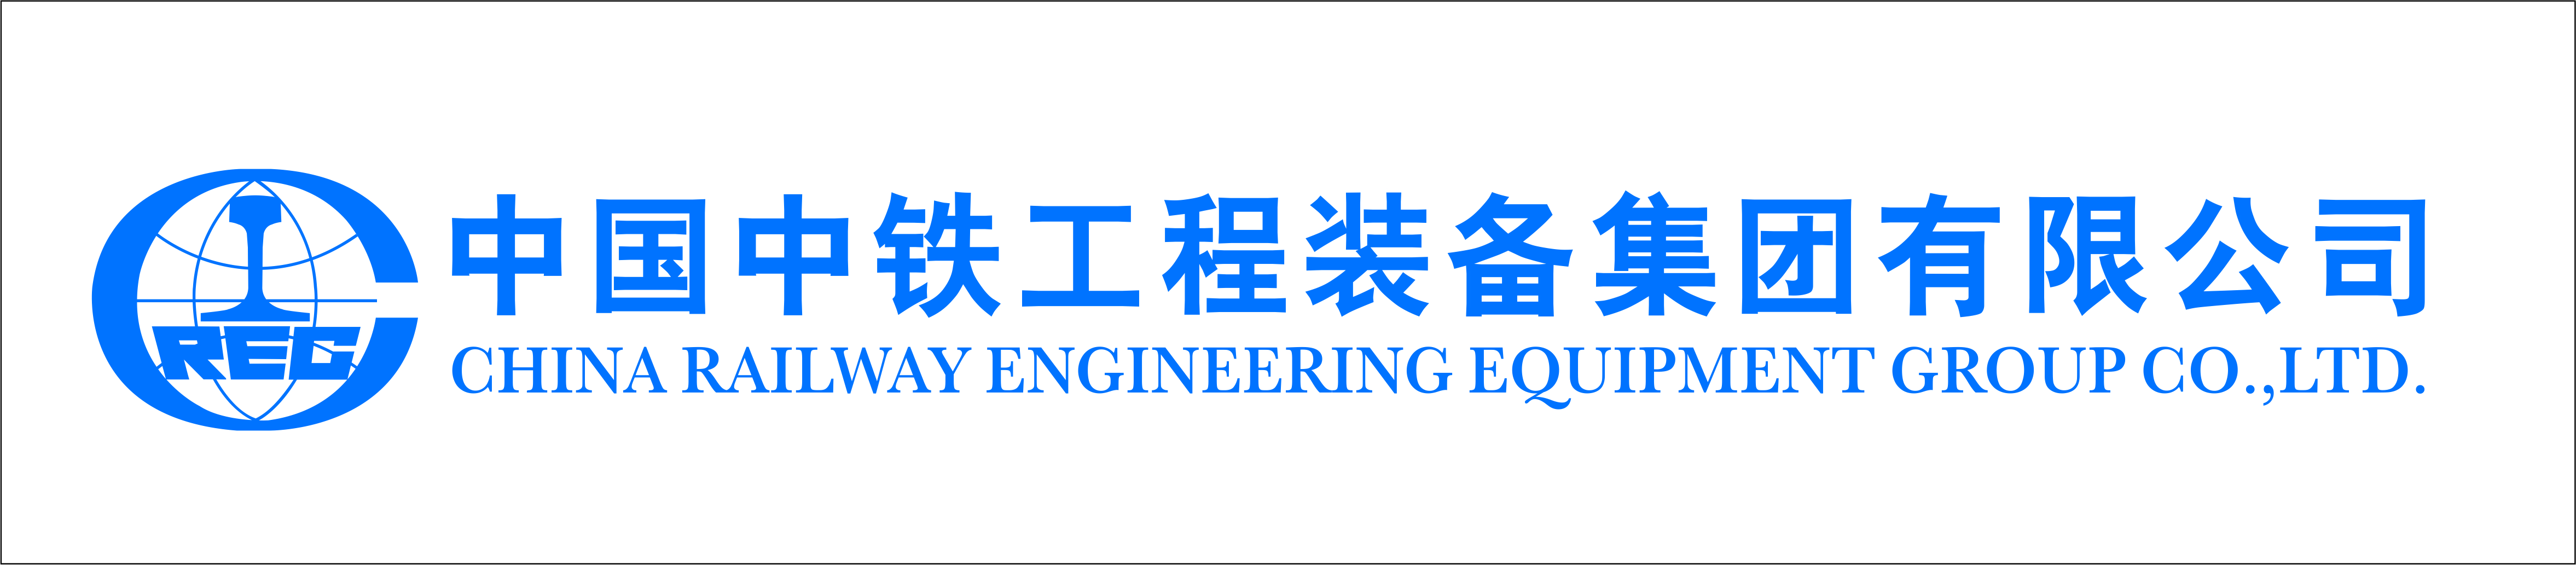 CHINA RAILWAY ENGINEERING EQUIPMENT GROUP CO., LTD.